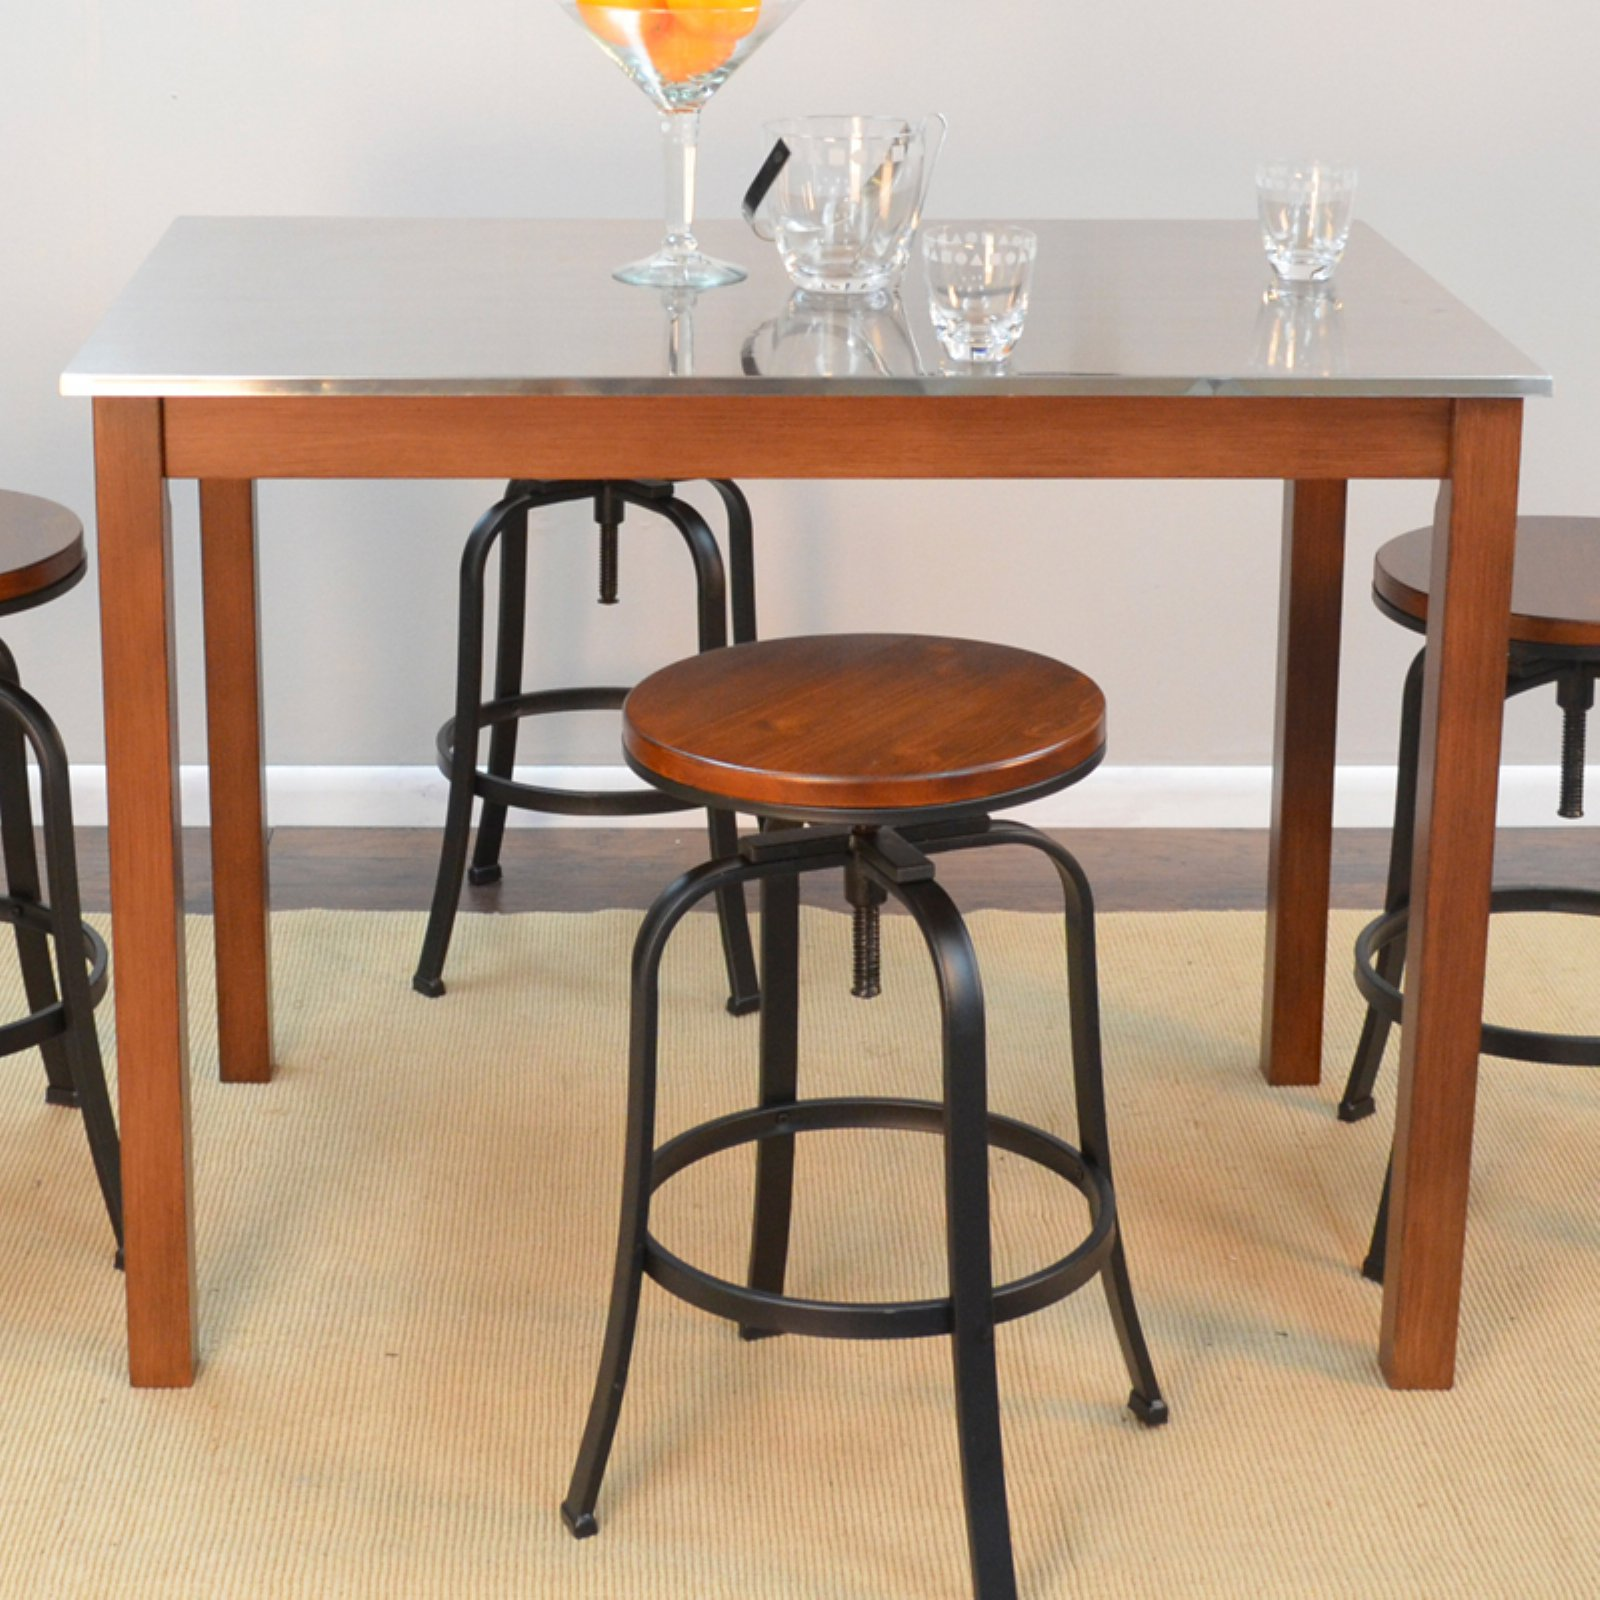 Carolina Morgan Stainless Steel Top Bar Table - Chestnut